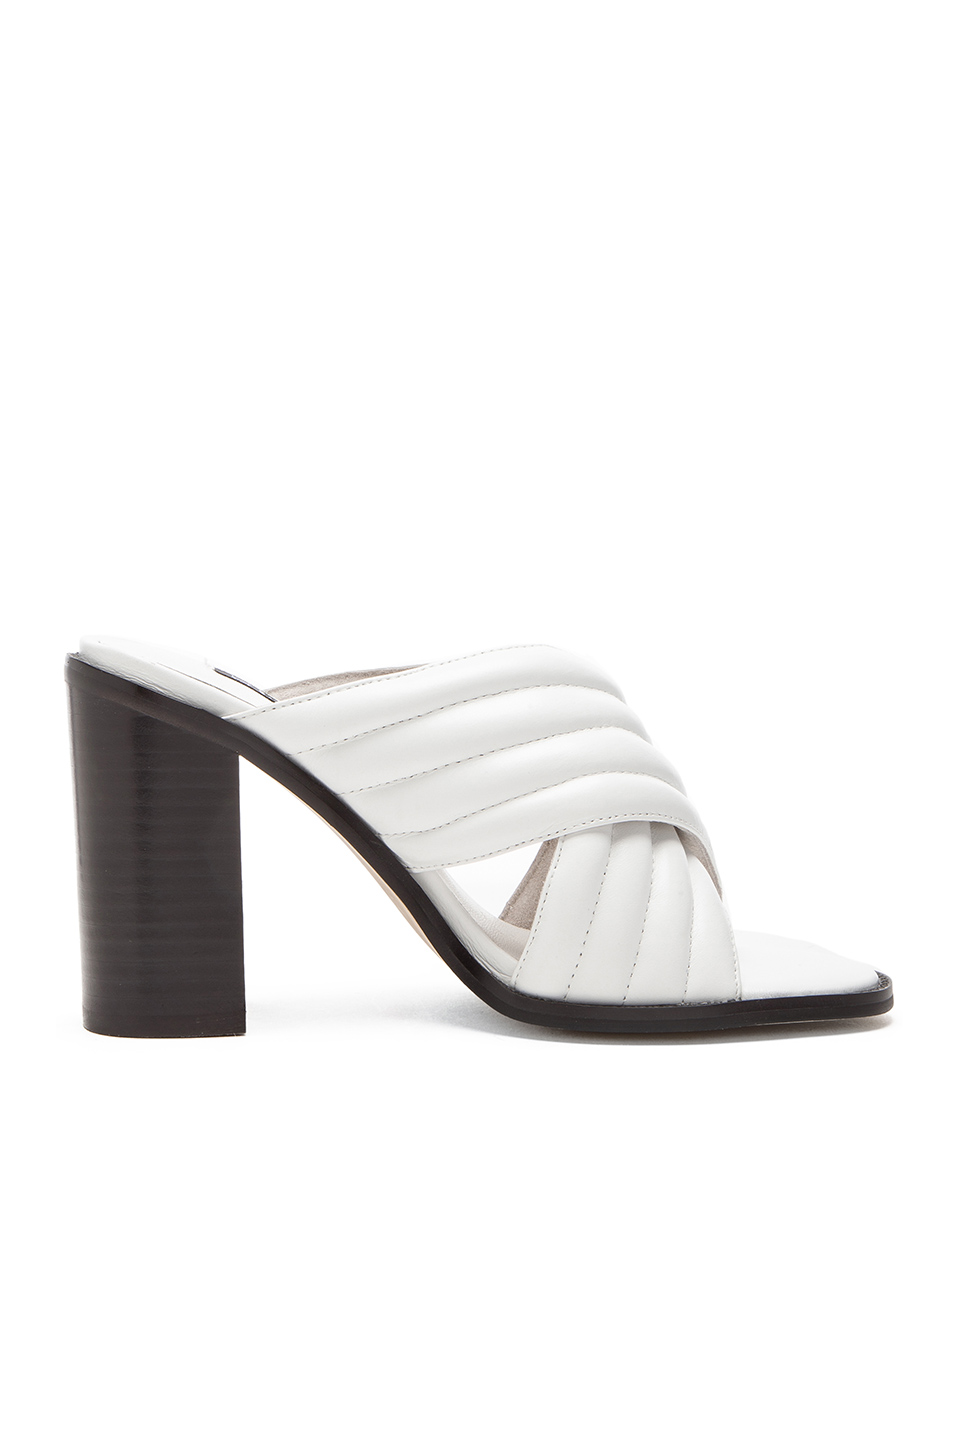 Senso Verity Heel, $82